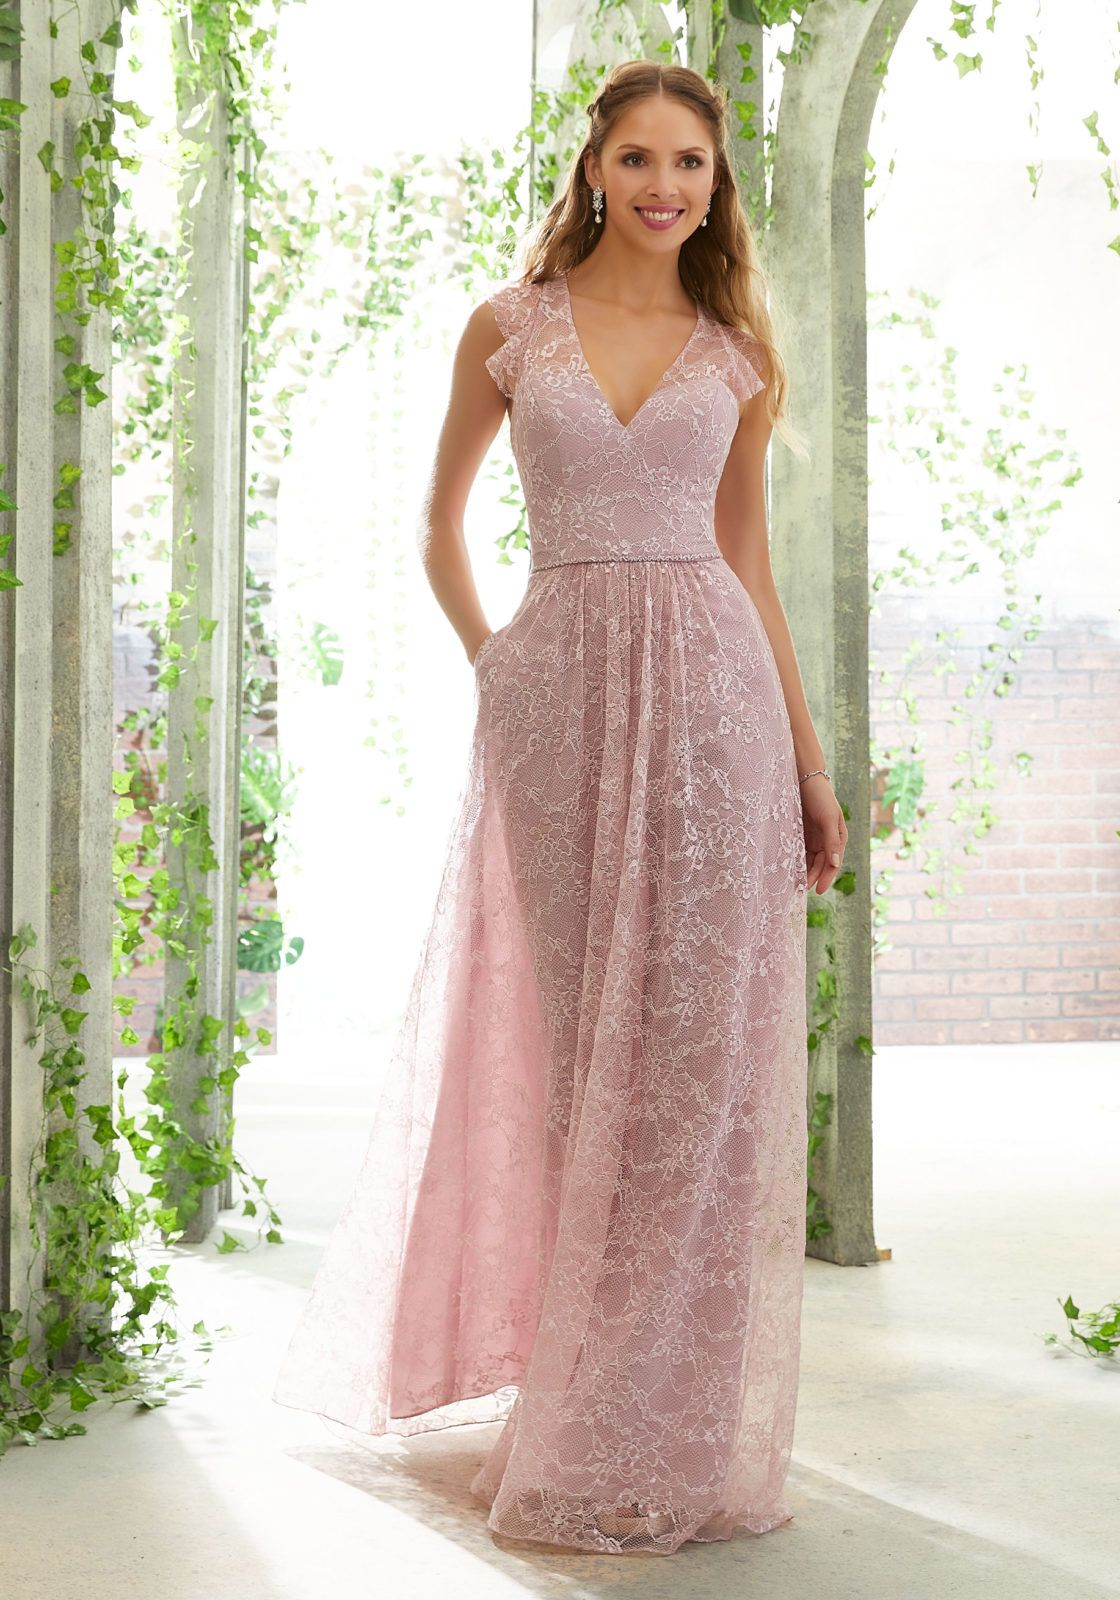 Chantilly Lace And Bridesmaid Dress With V Neckline Morilee Mori Lee Bridesmaid Dresses Lace Bridesmaid Dresses Bridesmaid Dresses